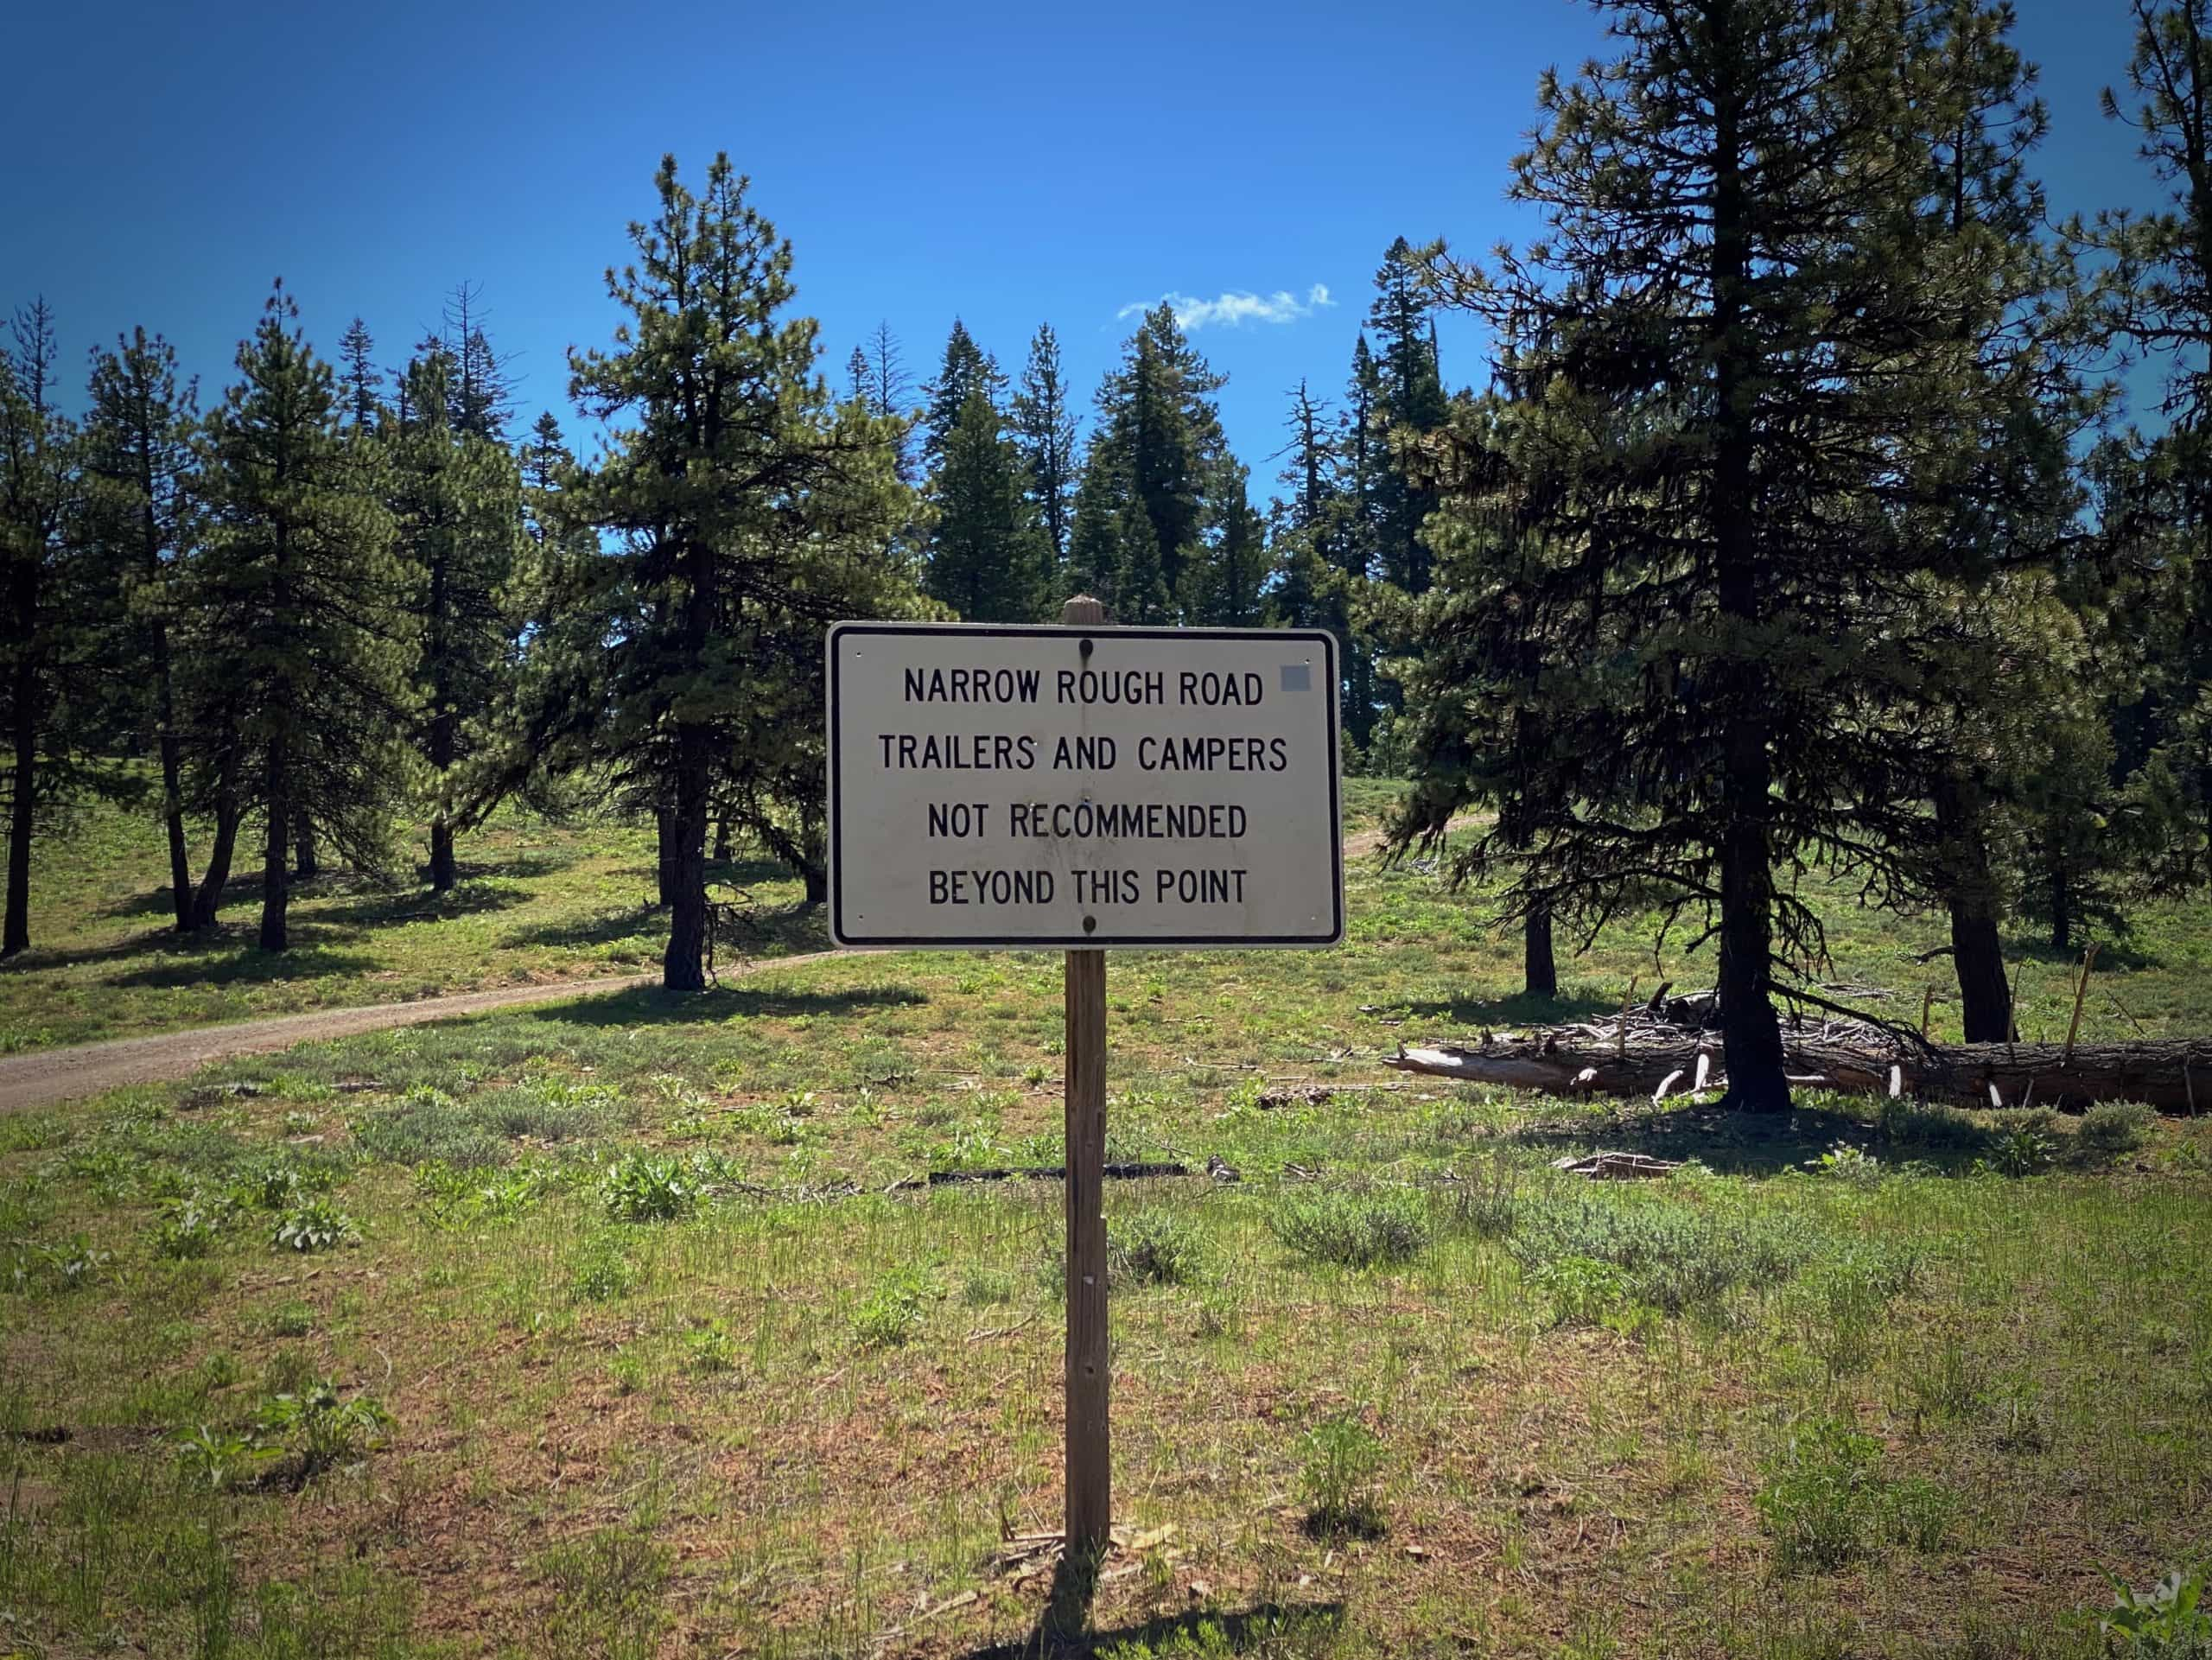 A sign along a Forest Service road advising against trailers and campers.